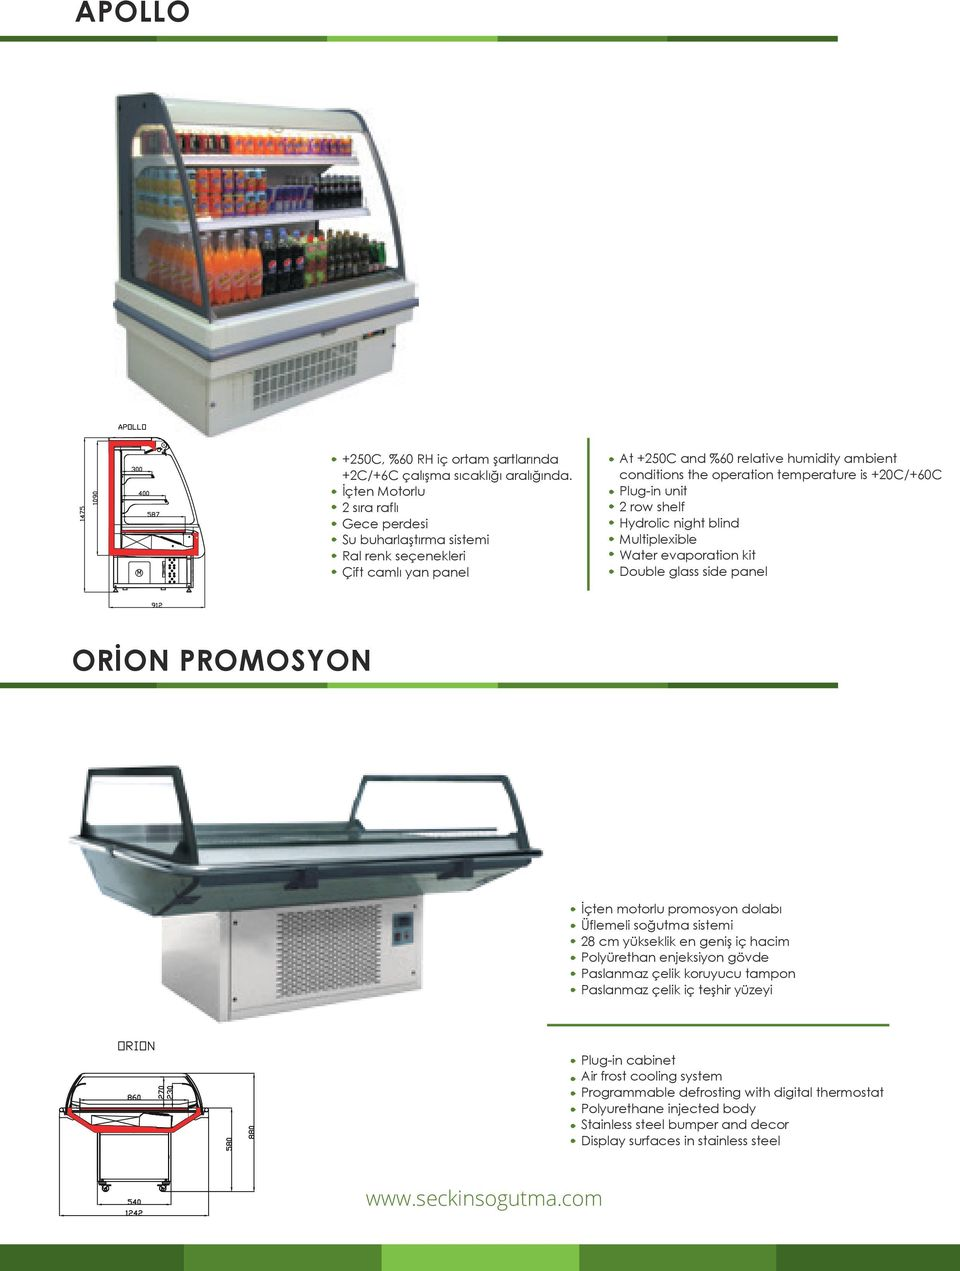 +20C/+60C Plug-in unit 2 row shelf Hydrolic night blind Multiplexible Water evaporation kit Double glass side panel ORİON PROMOSYON İçten motorlu promosyon dolabı Üflemeli soğutma sistemi 28